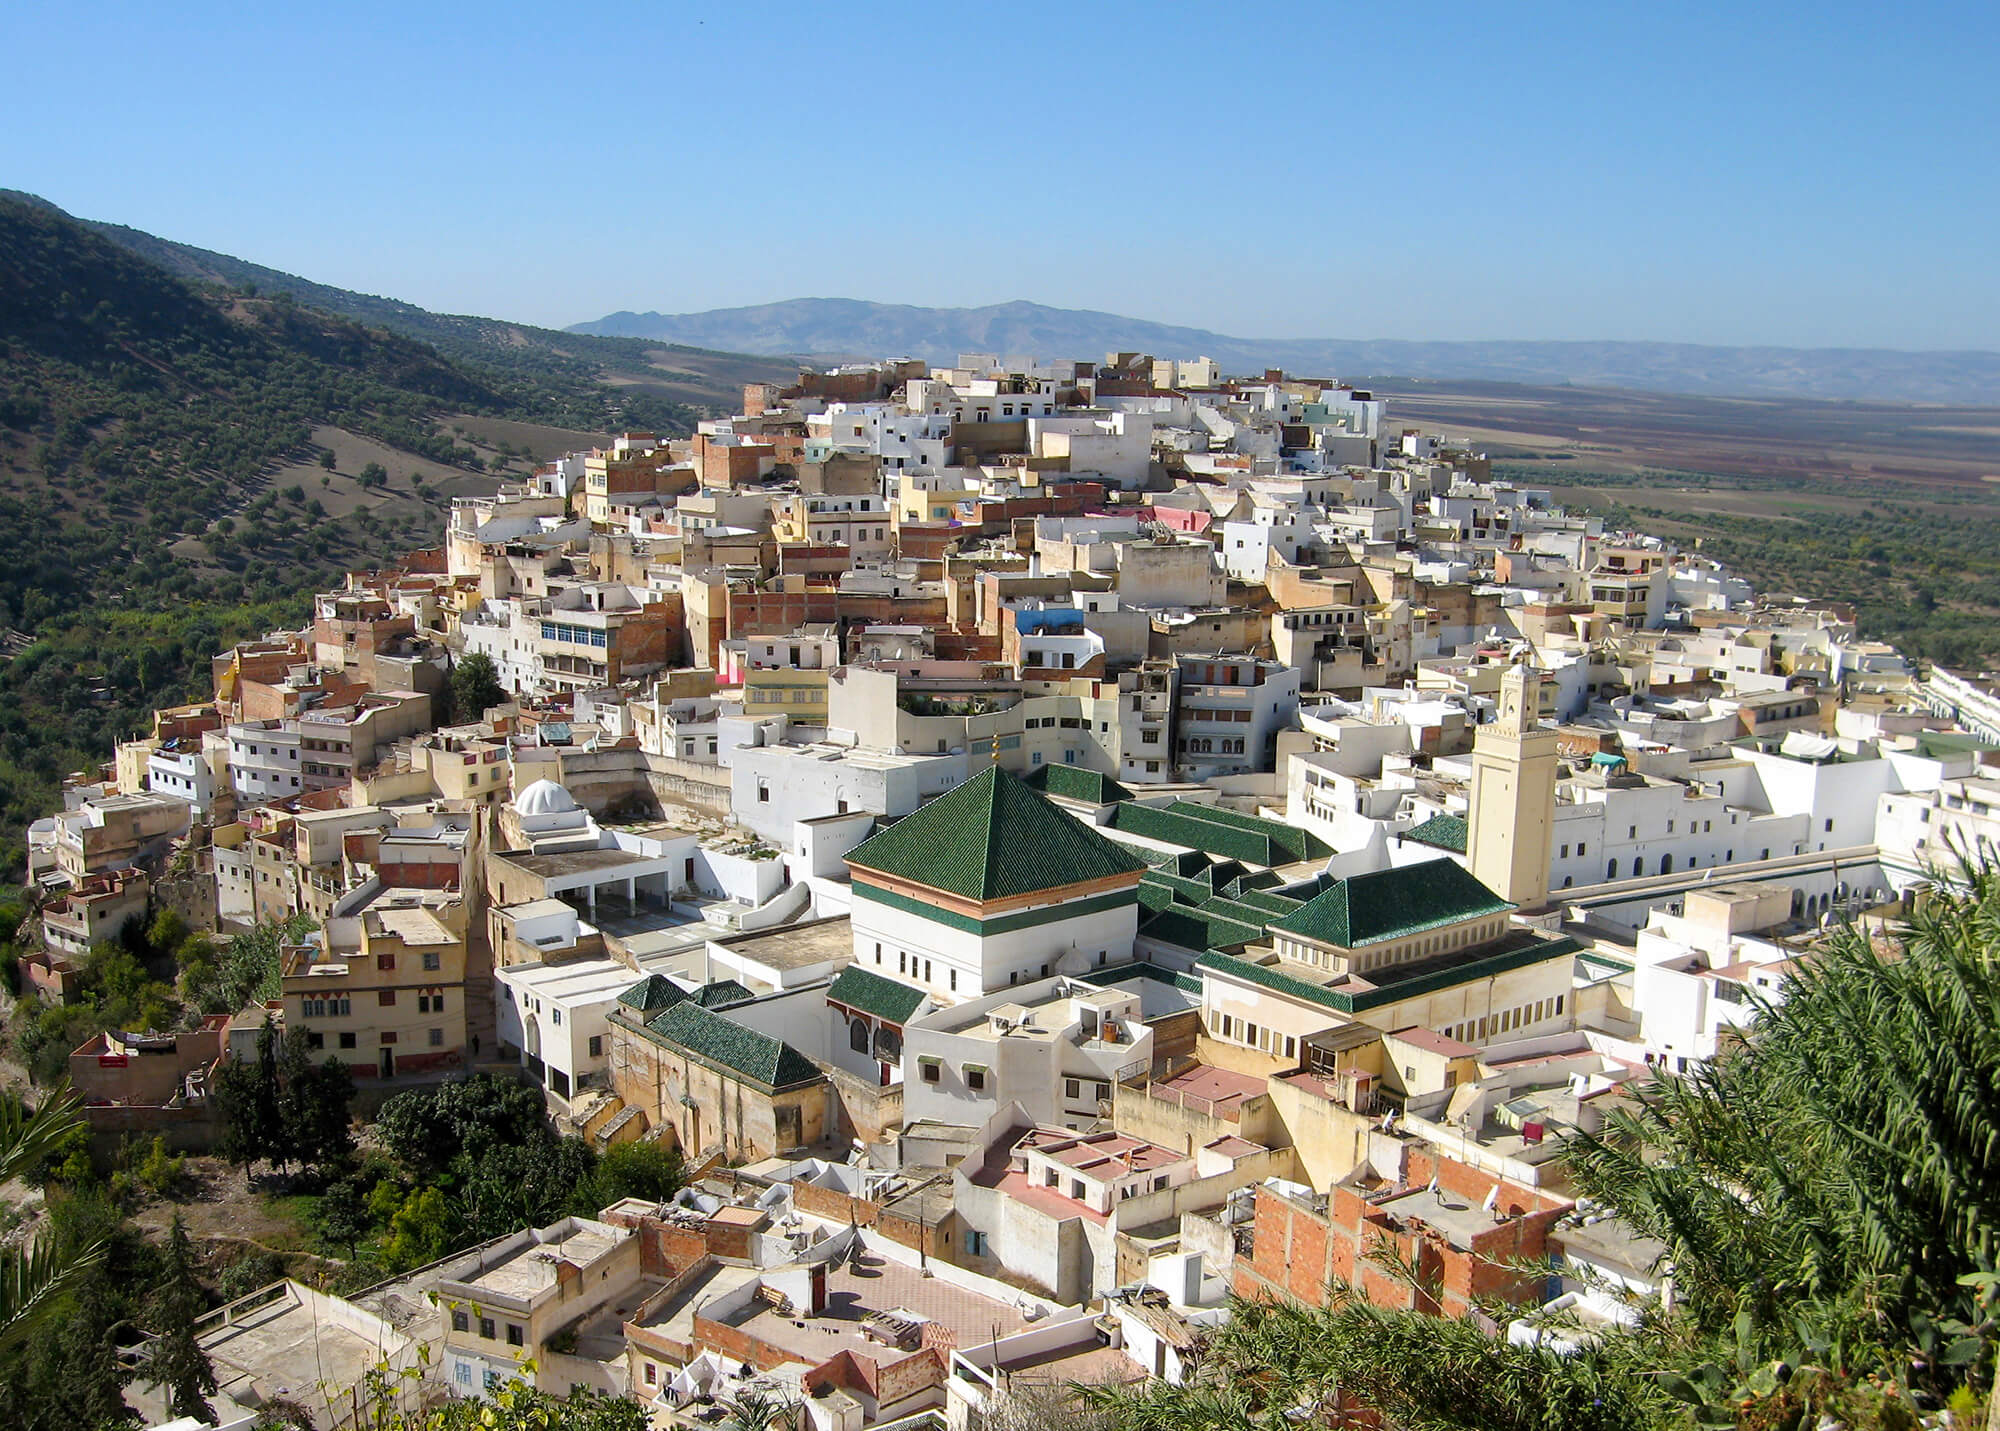 Sahara Desert Tour - What to See and Do in Meknes, one of Morocco's Grandest Ancient Cities - Moulay Idriss